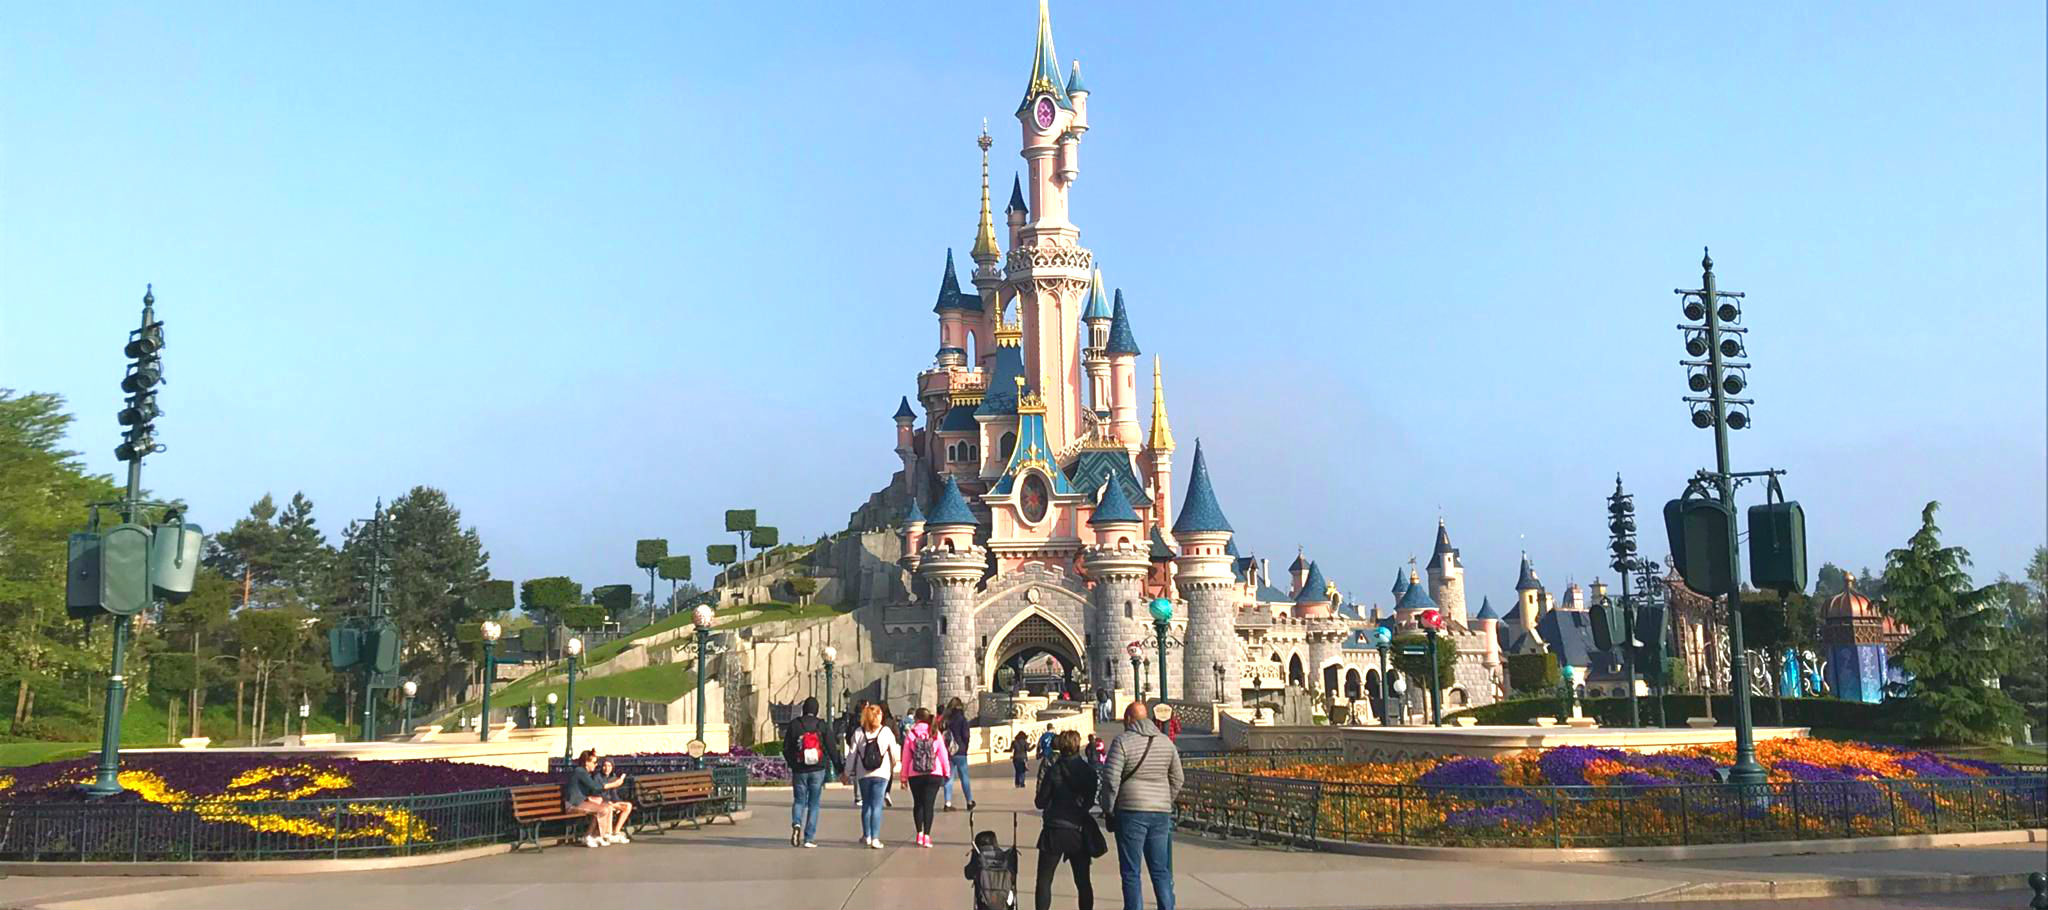 sleeping-beautys-castle-disneyland-paris.jpg